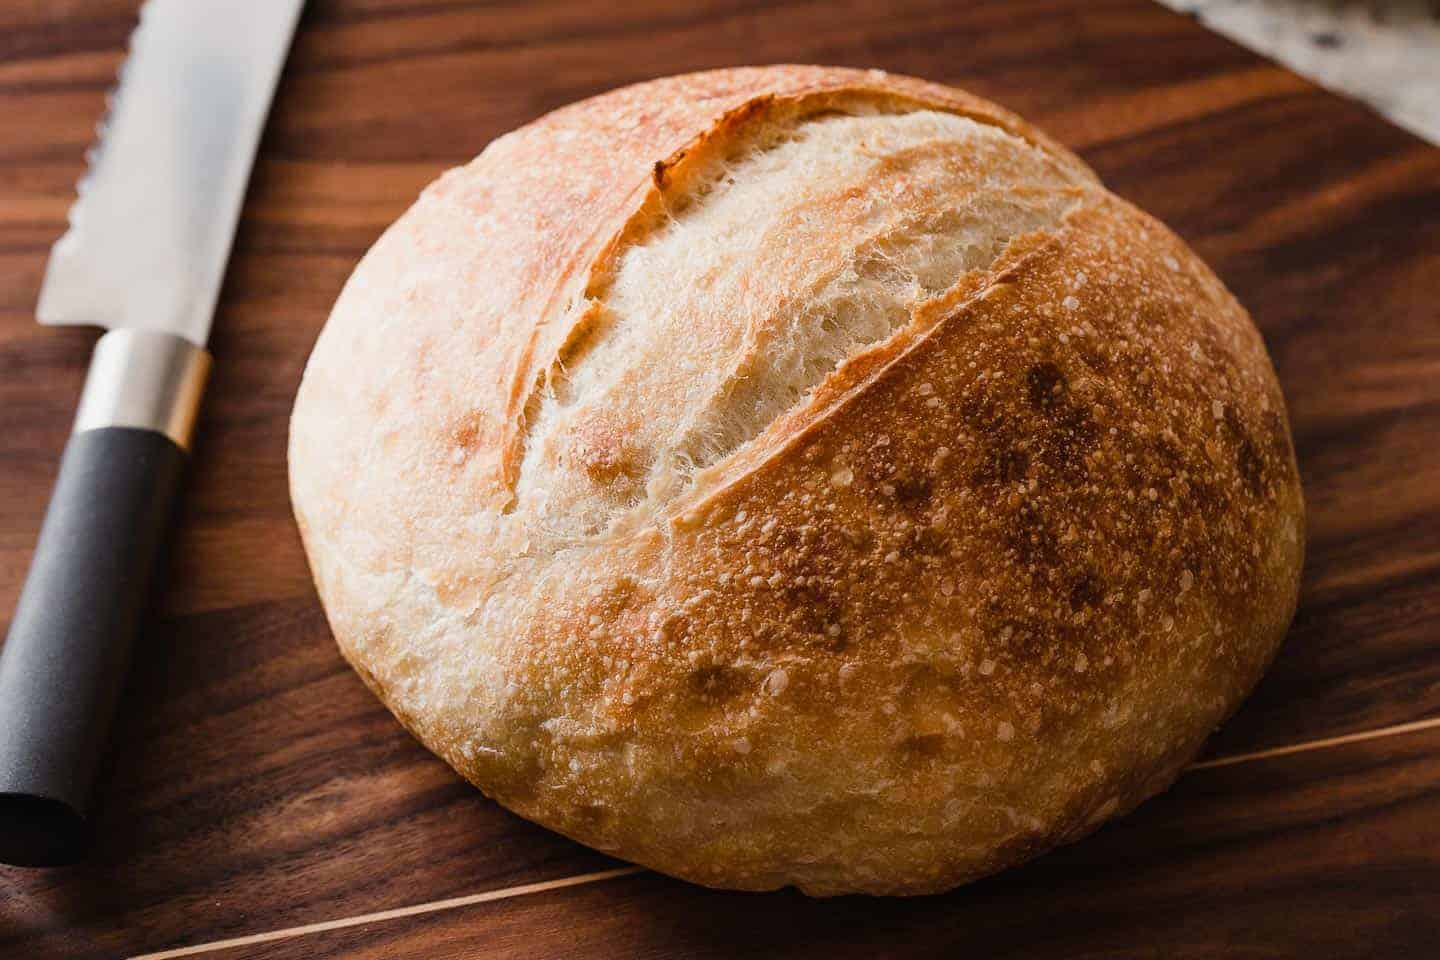 Closeup photo of a fresh loaf of sourdough bread.